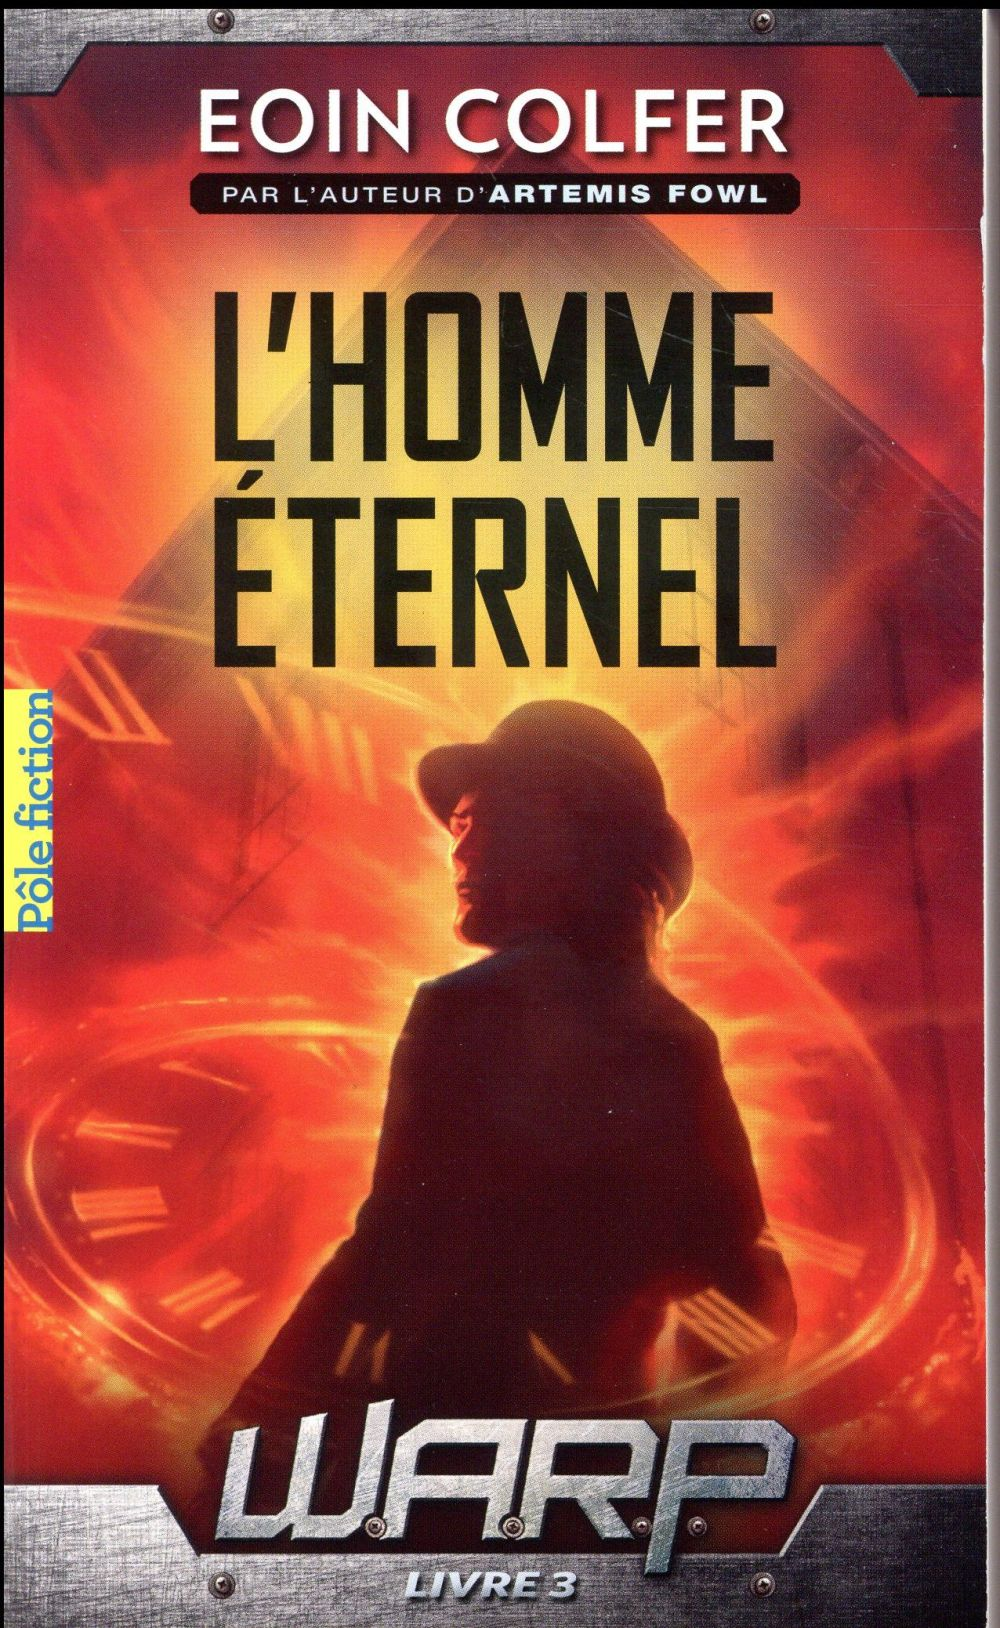 W.A.R.P. (TOME 3-L'HOMME ETERNEL)